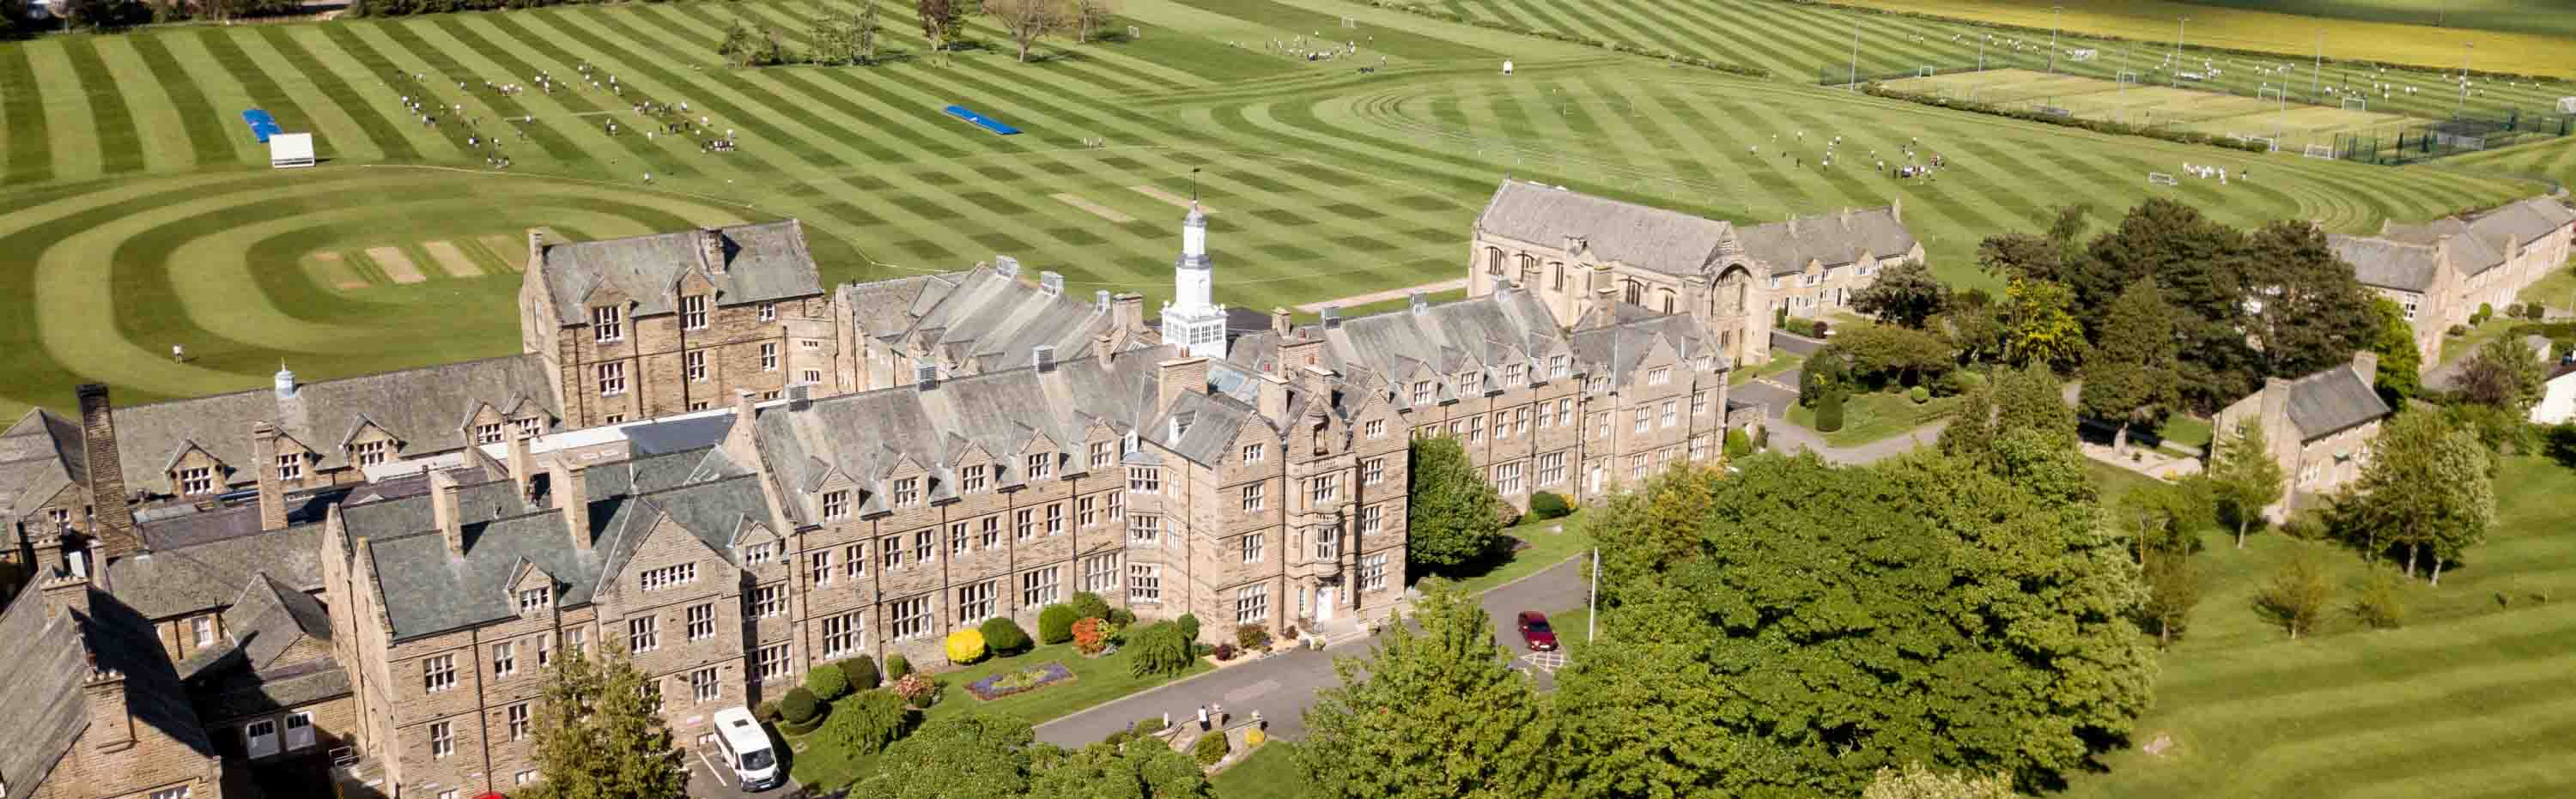 Barnard Castle School, Barnard Castle, County Durham, England | Dickinson | British Boarding School Consulting